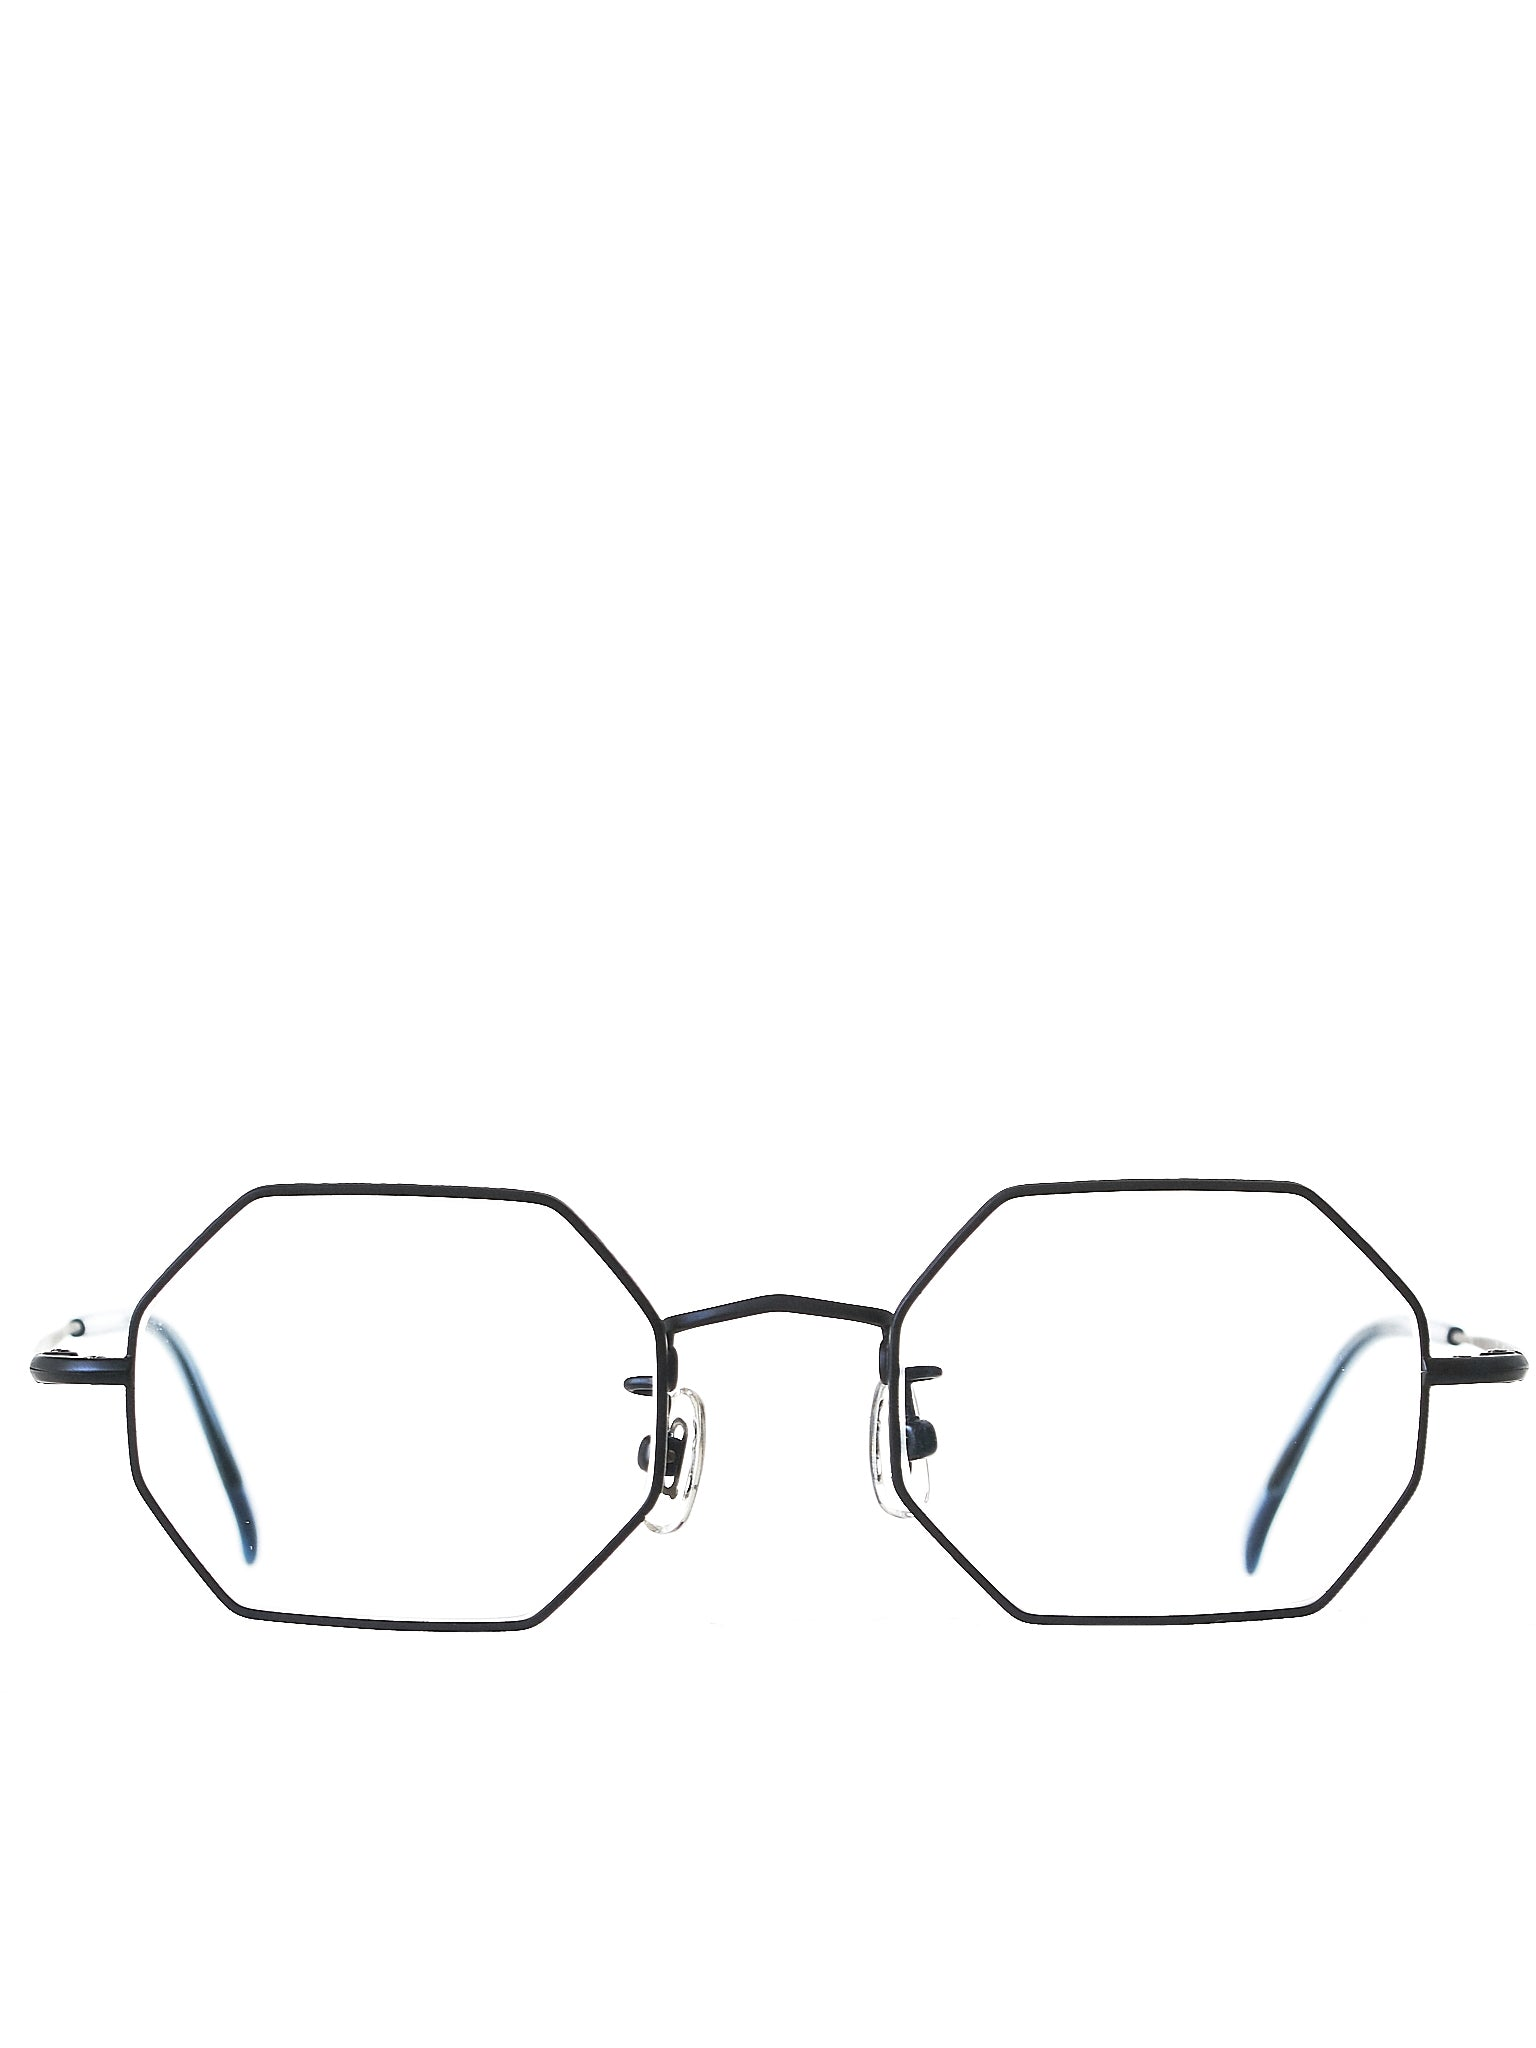 'PTR' Octagon Glasses (ST-TITAN-PTR-OCTA-NAVY-MATT-CL)